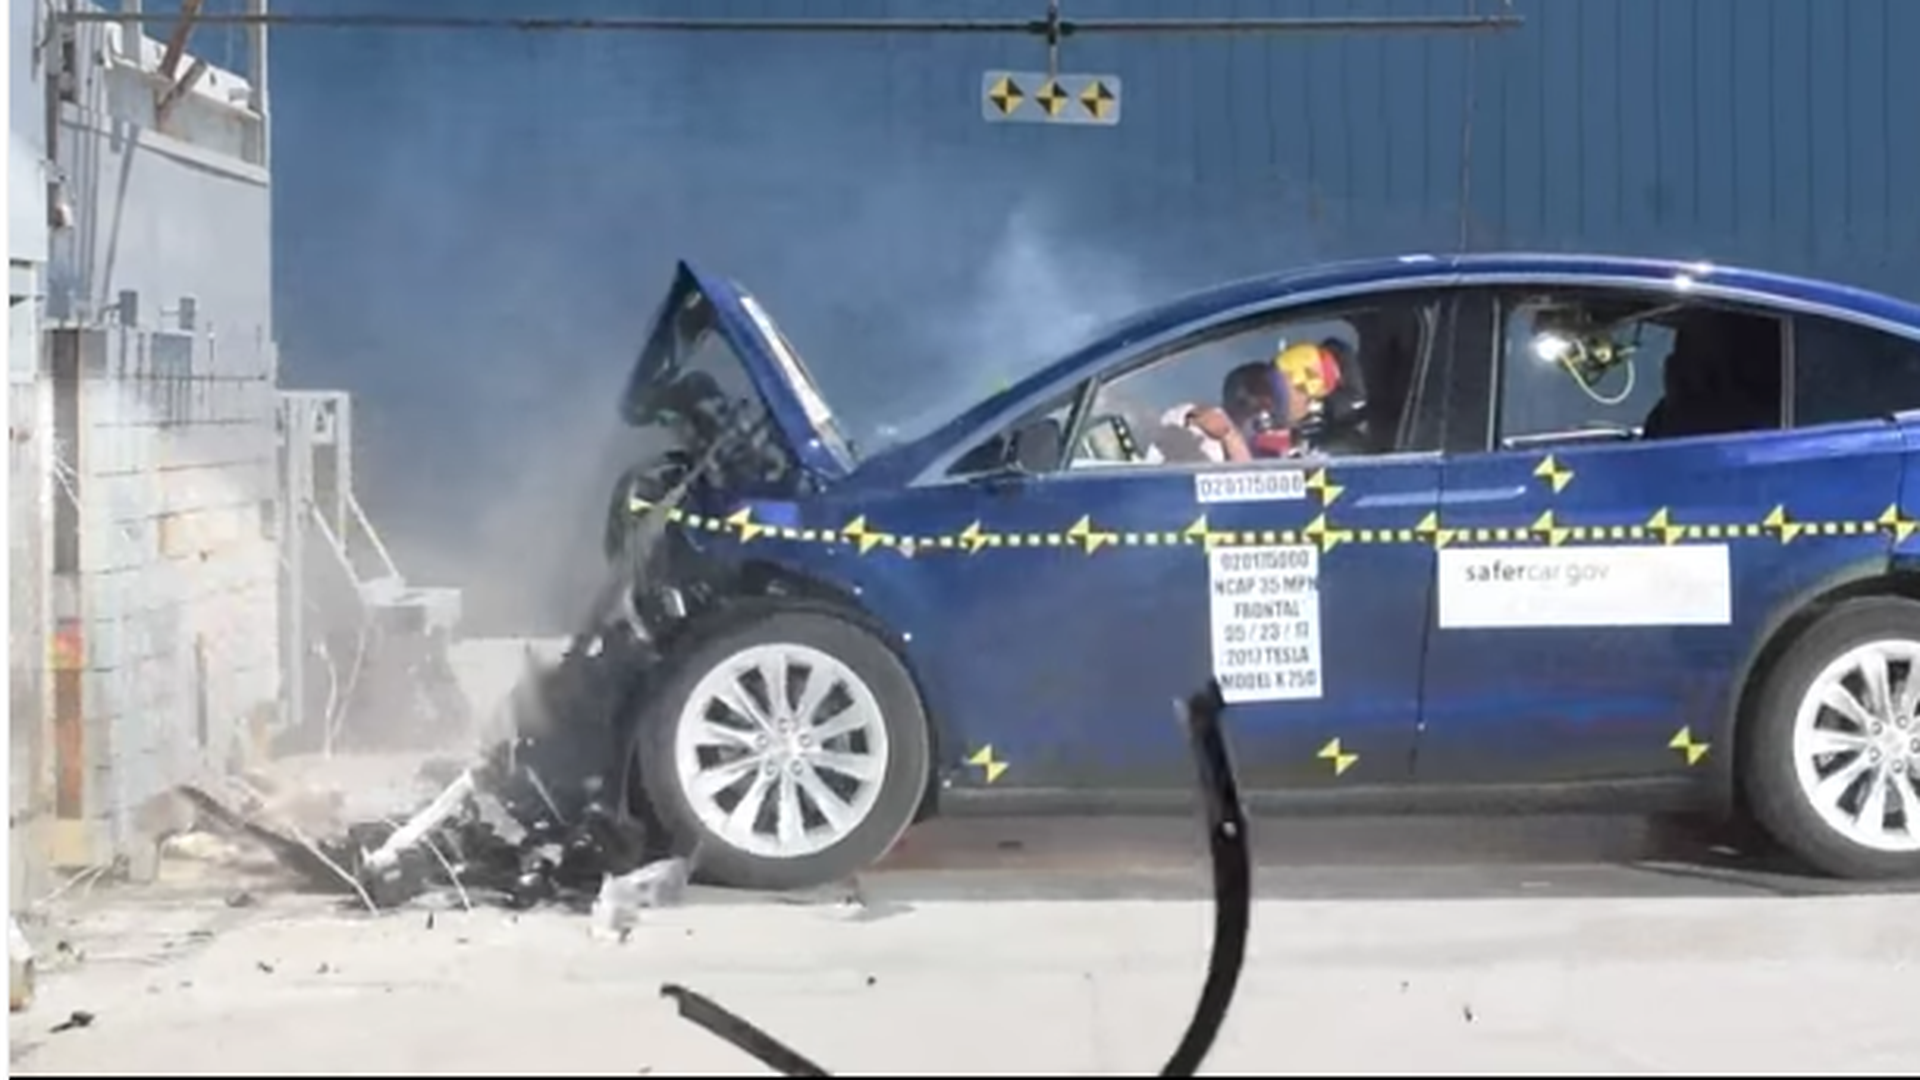 Tesla S Model X Electric Car Which Was First Unveiled In 2017 Just Received A 5 Star Safety Rating Every Category And Subcategory By The National